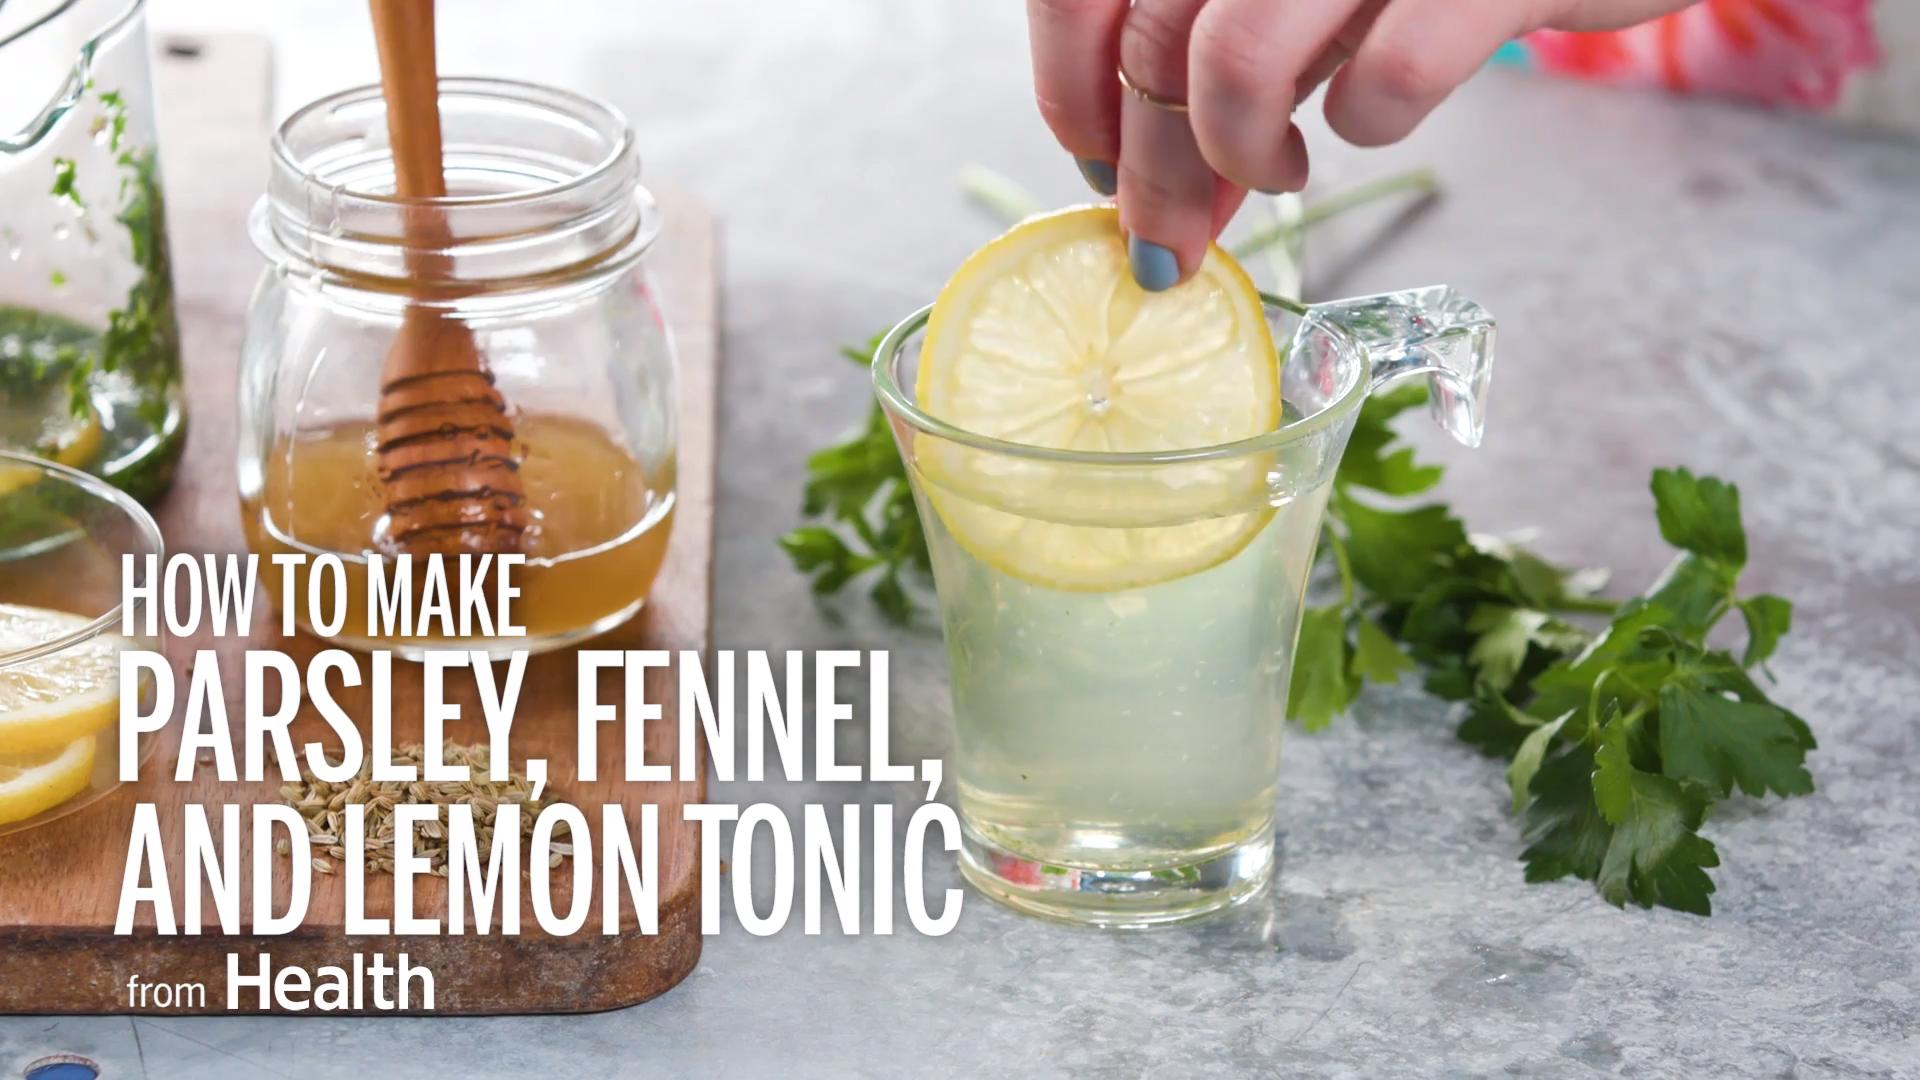 Parsley, fennel, and lemon tonic